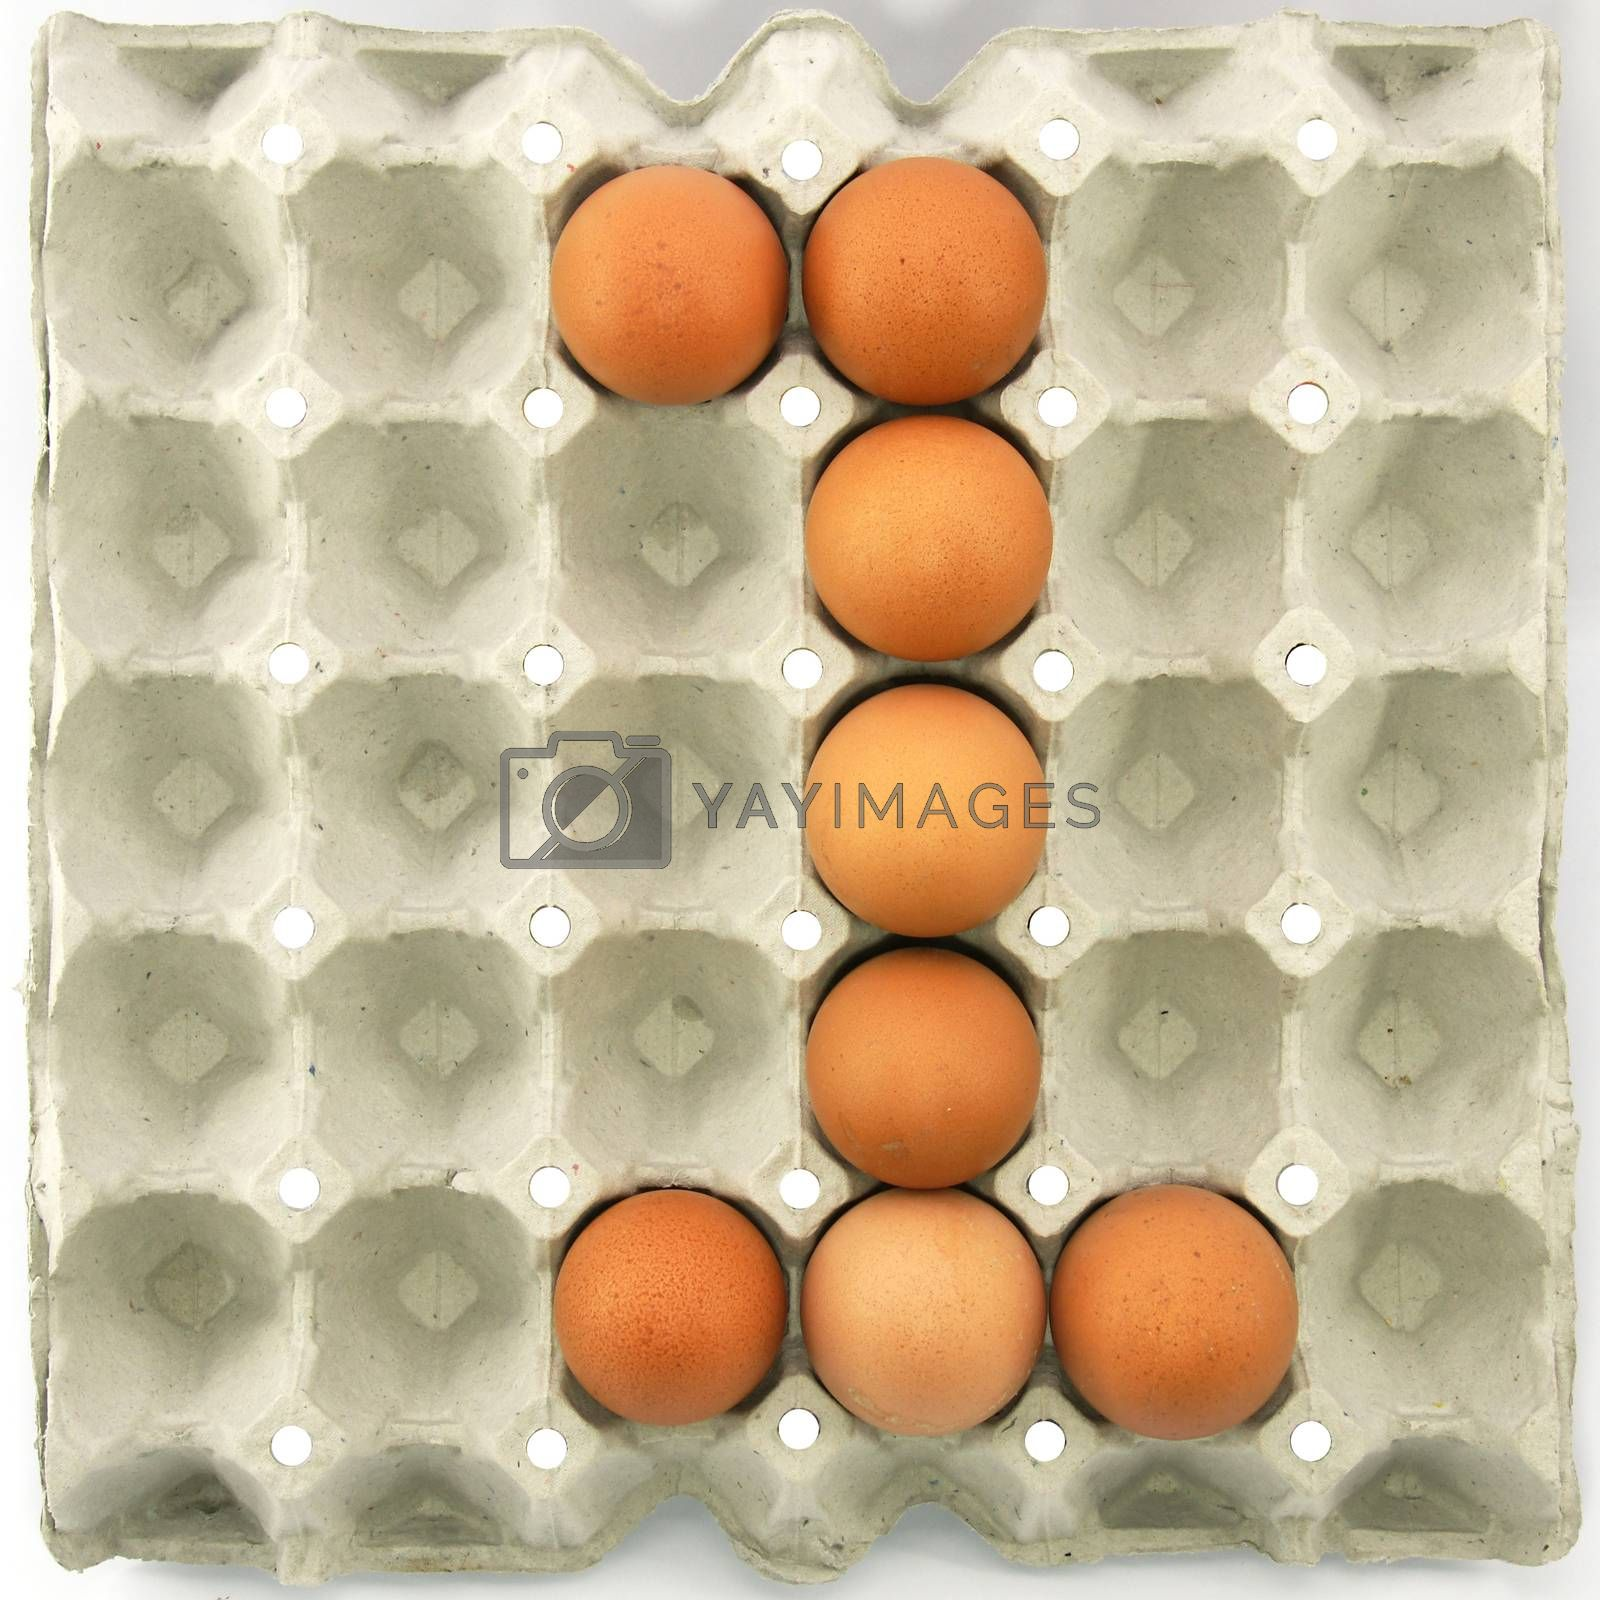 Number one of eggs in the paper package tray